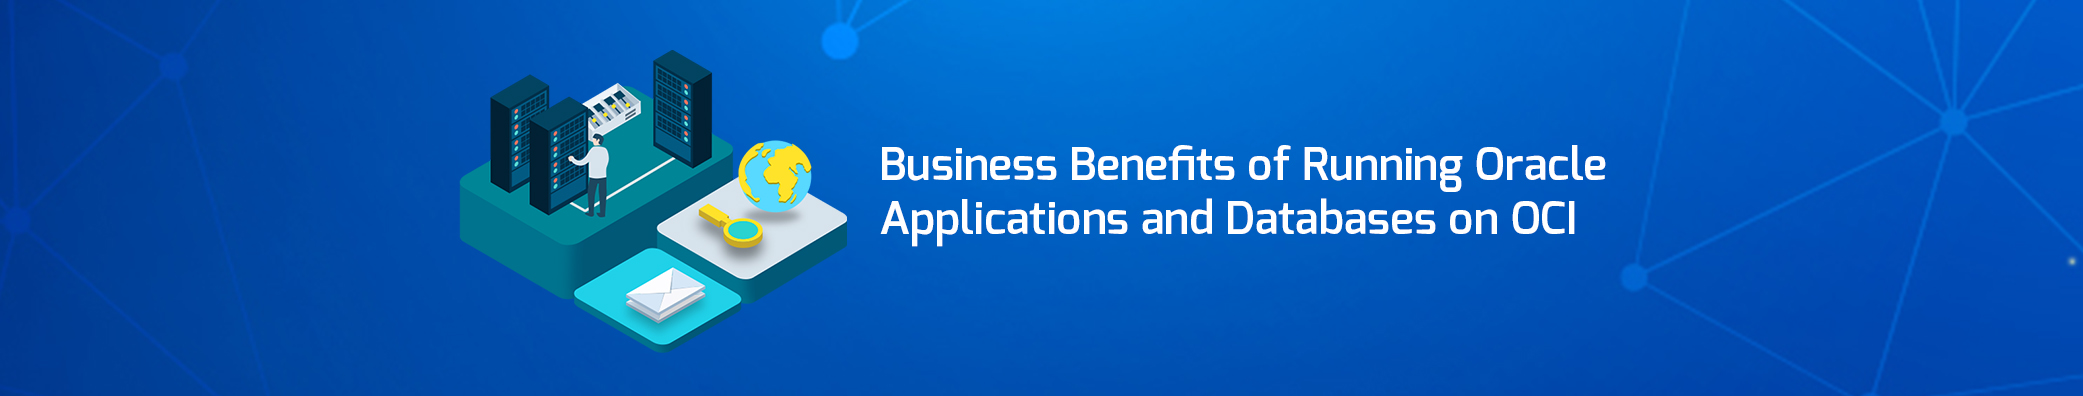 5 Business Benefits of Running Oracle Applications and Databases on OCI